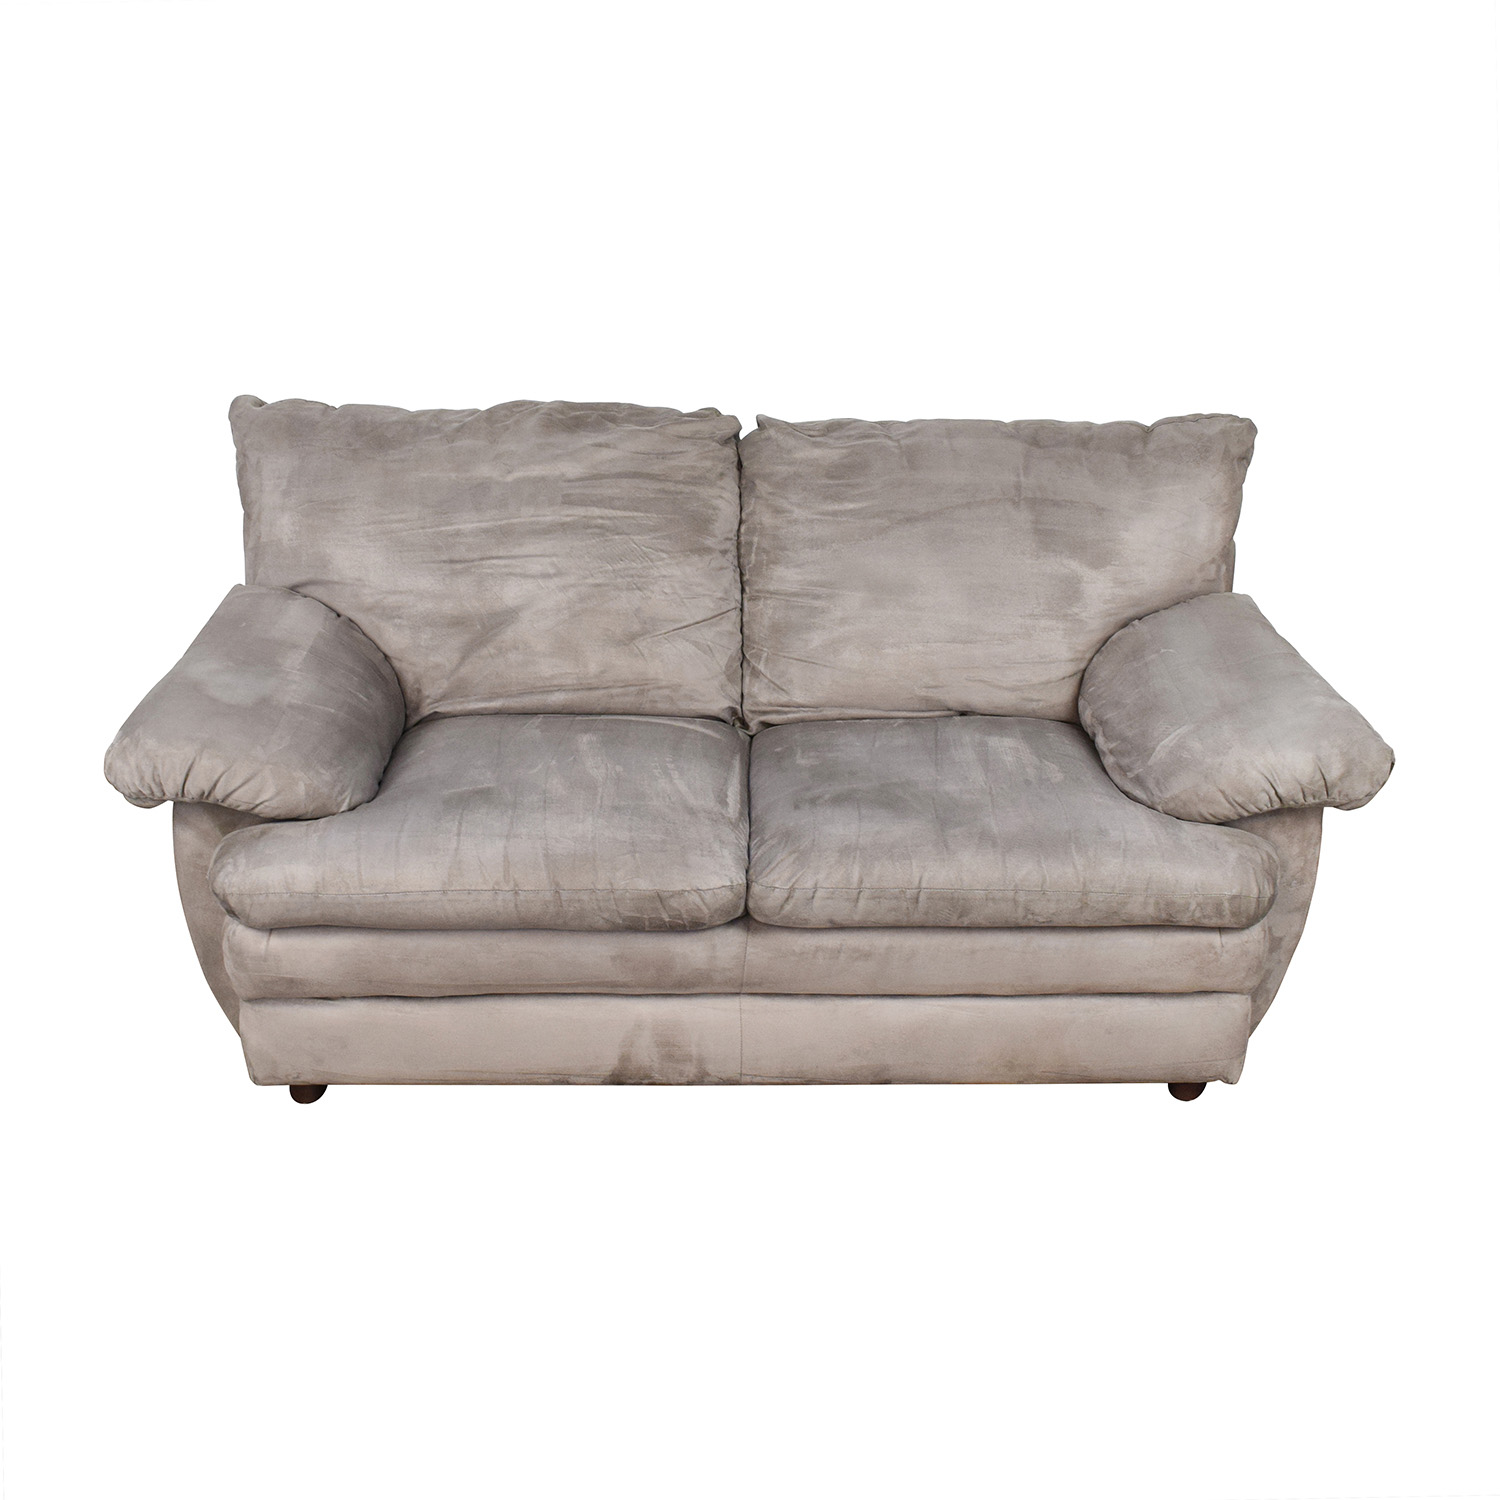 Microfiber Grey Couch / Classic Sofas